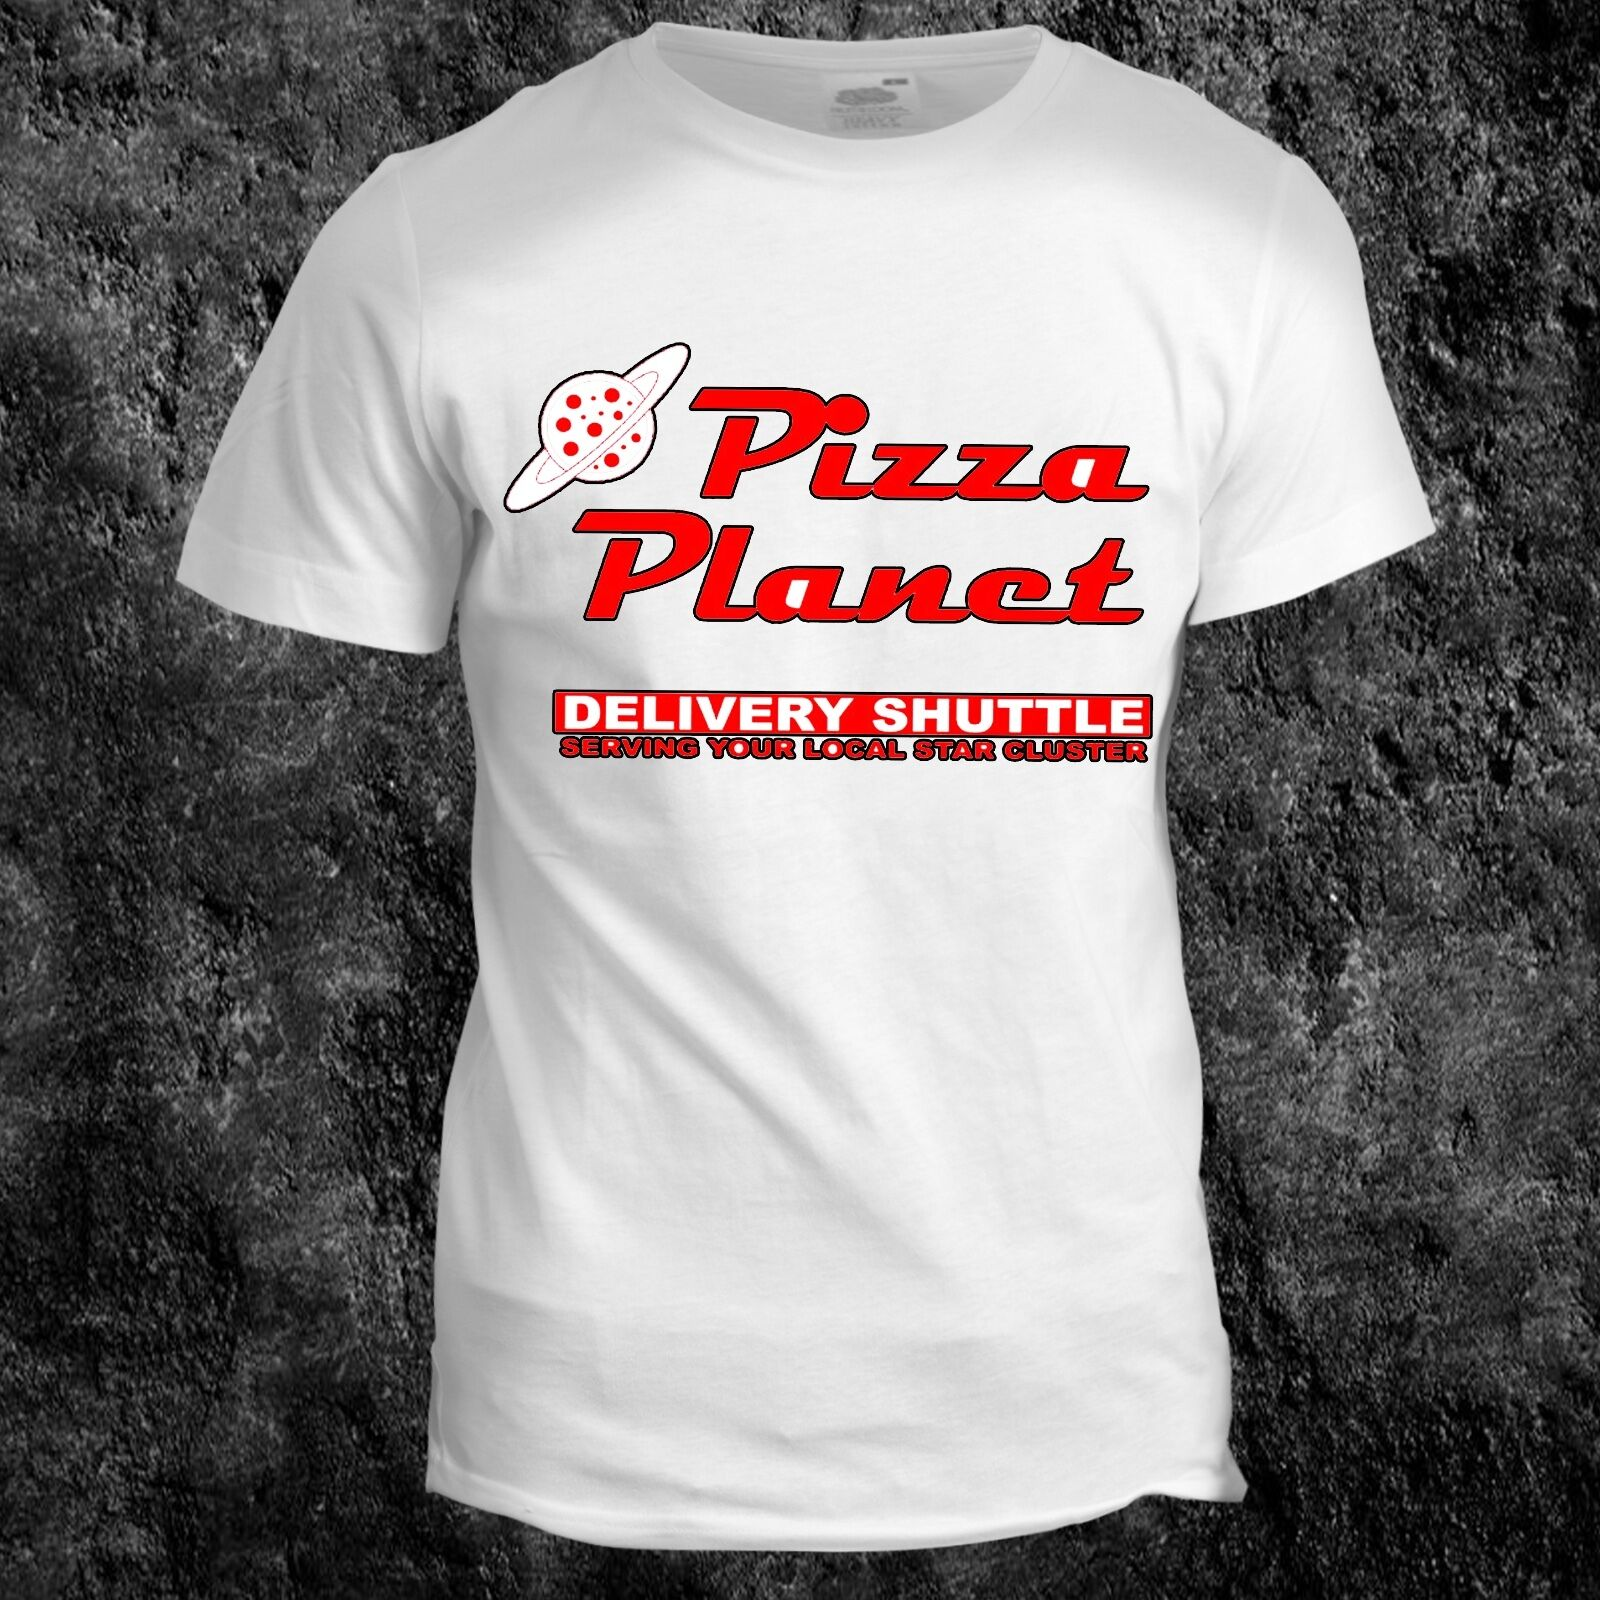 Toy Story Pizza Planet Inspired Film Cartoon Buzz Movie Kids 90s T shirt Men Brand Printed 100% Cotton T shirt image